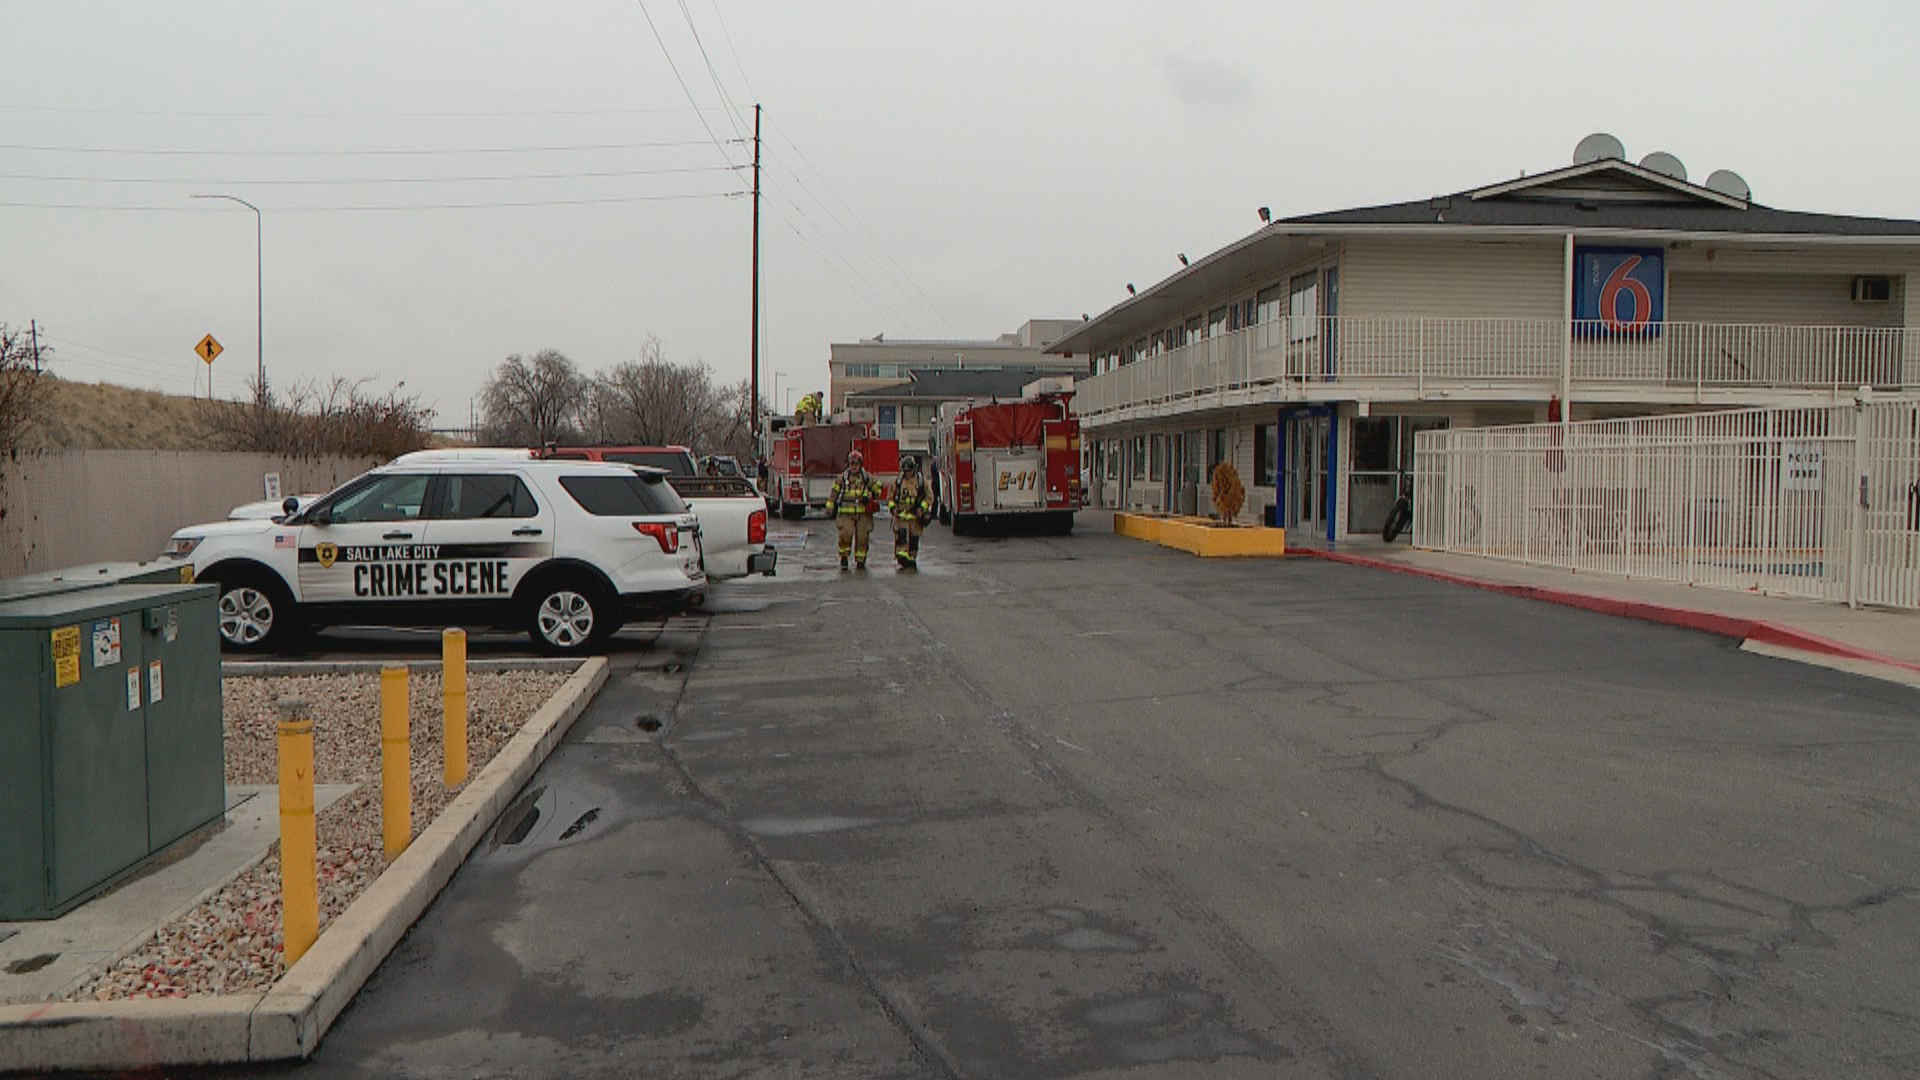 A man is in critical condition after a small fire burned up a room at a Motel 6 in Salt Lake City on Sunday. (Photo: KUTV)